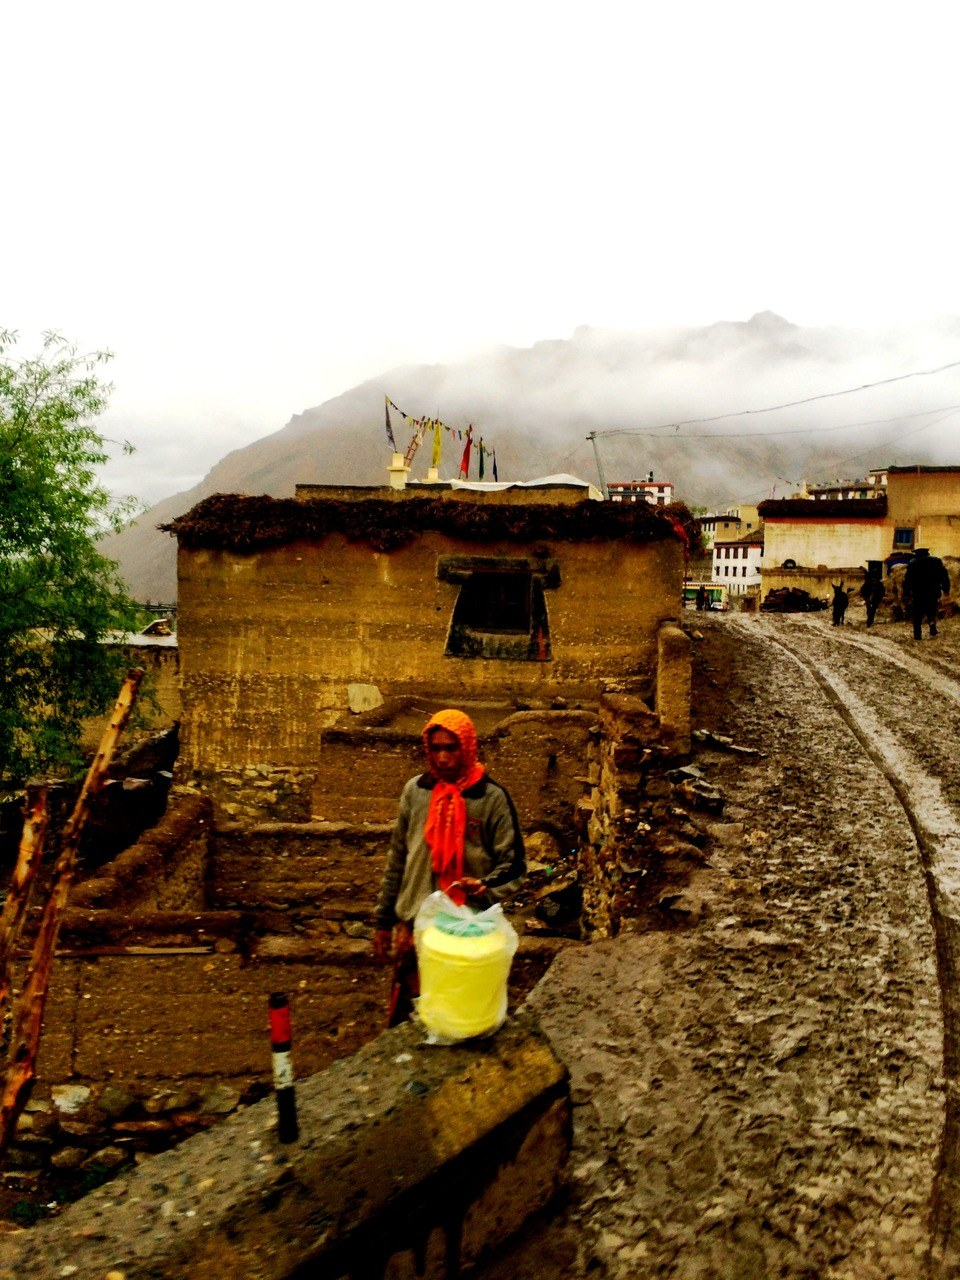 Kibber village shortly after rain